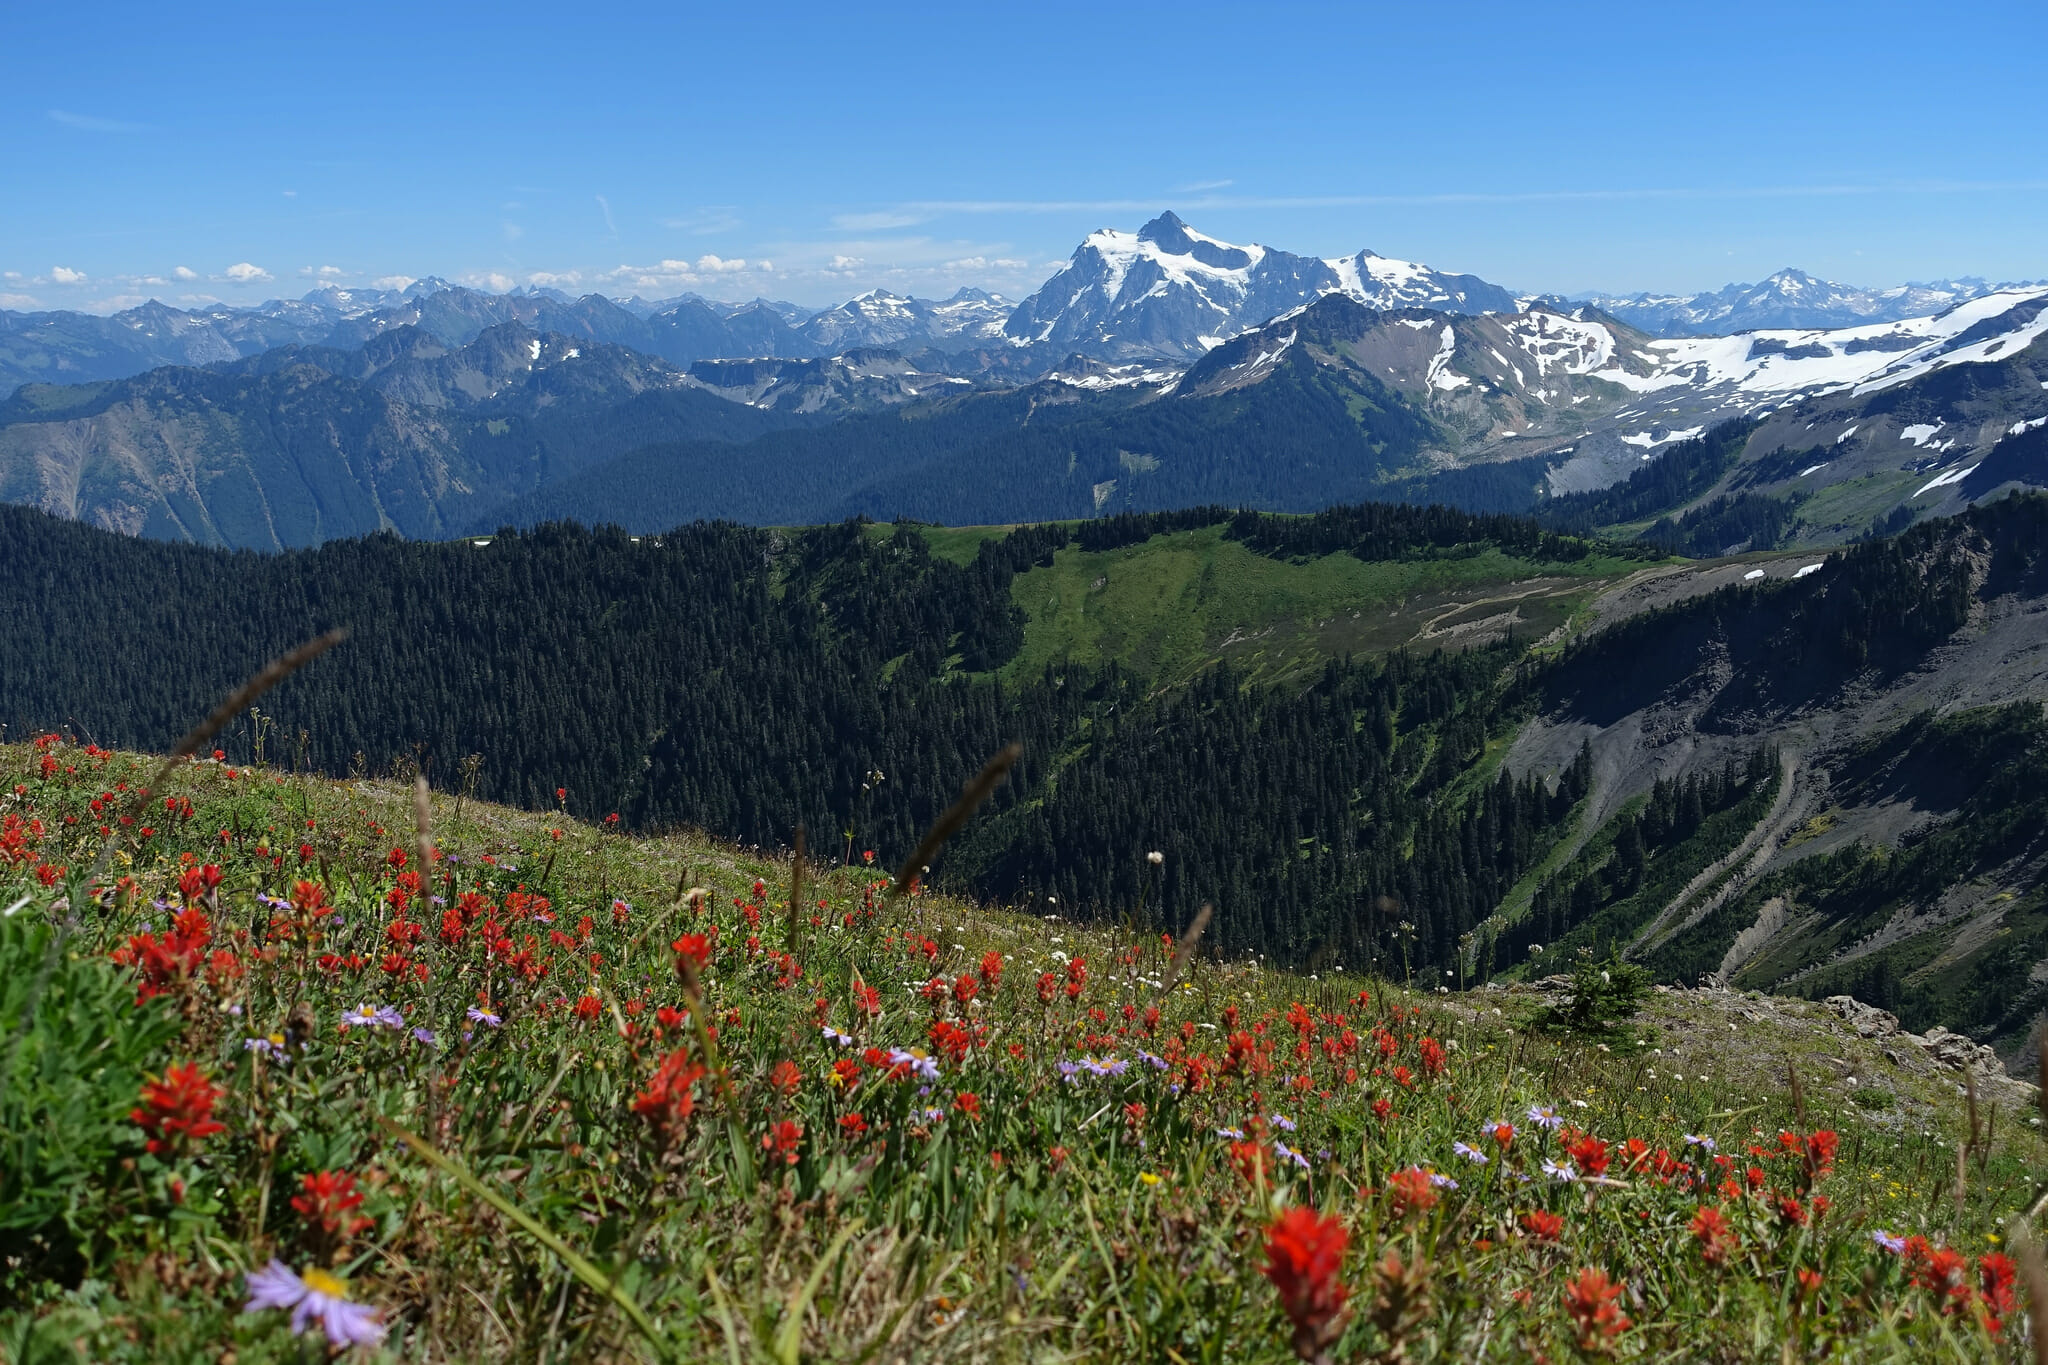 Wildflowers, with Mount Shuksan and other North Cascades peaks in the background.